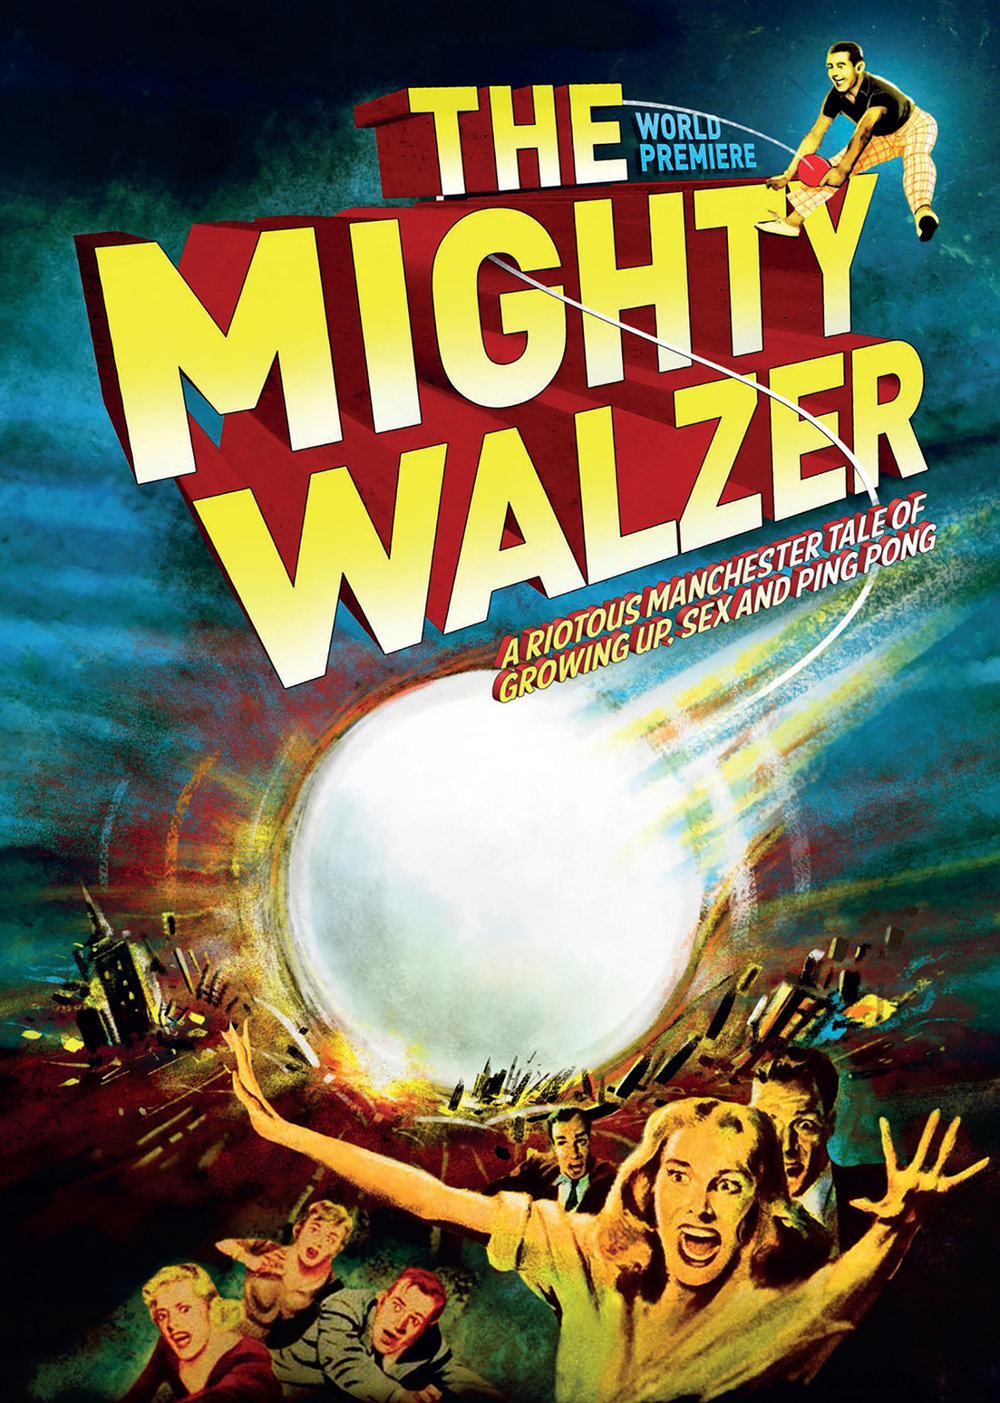 2016_06_30_the_mighty_walzer06.jpg